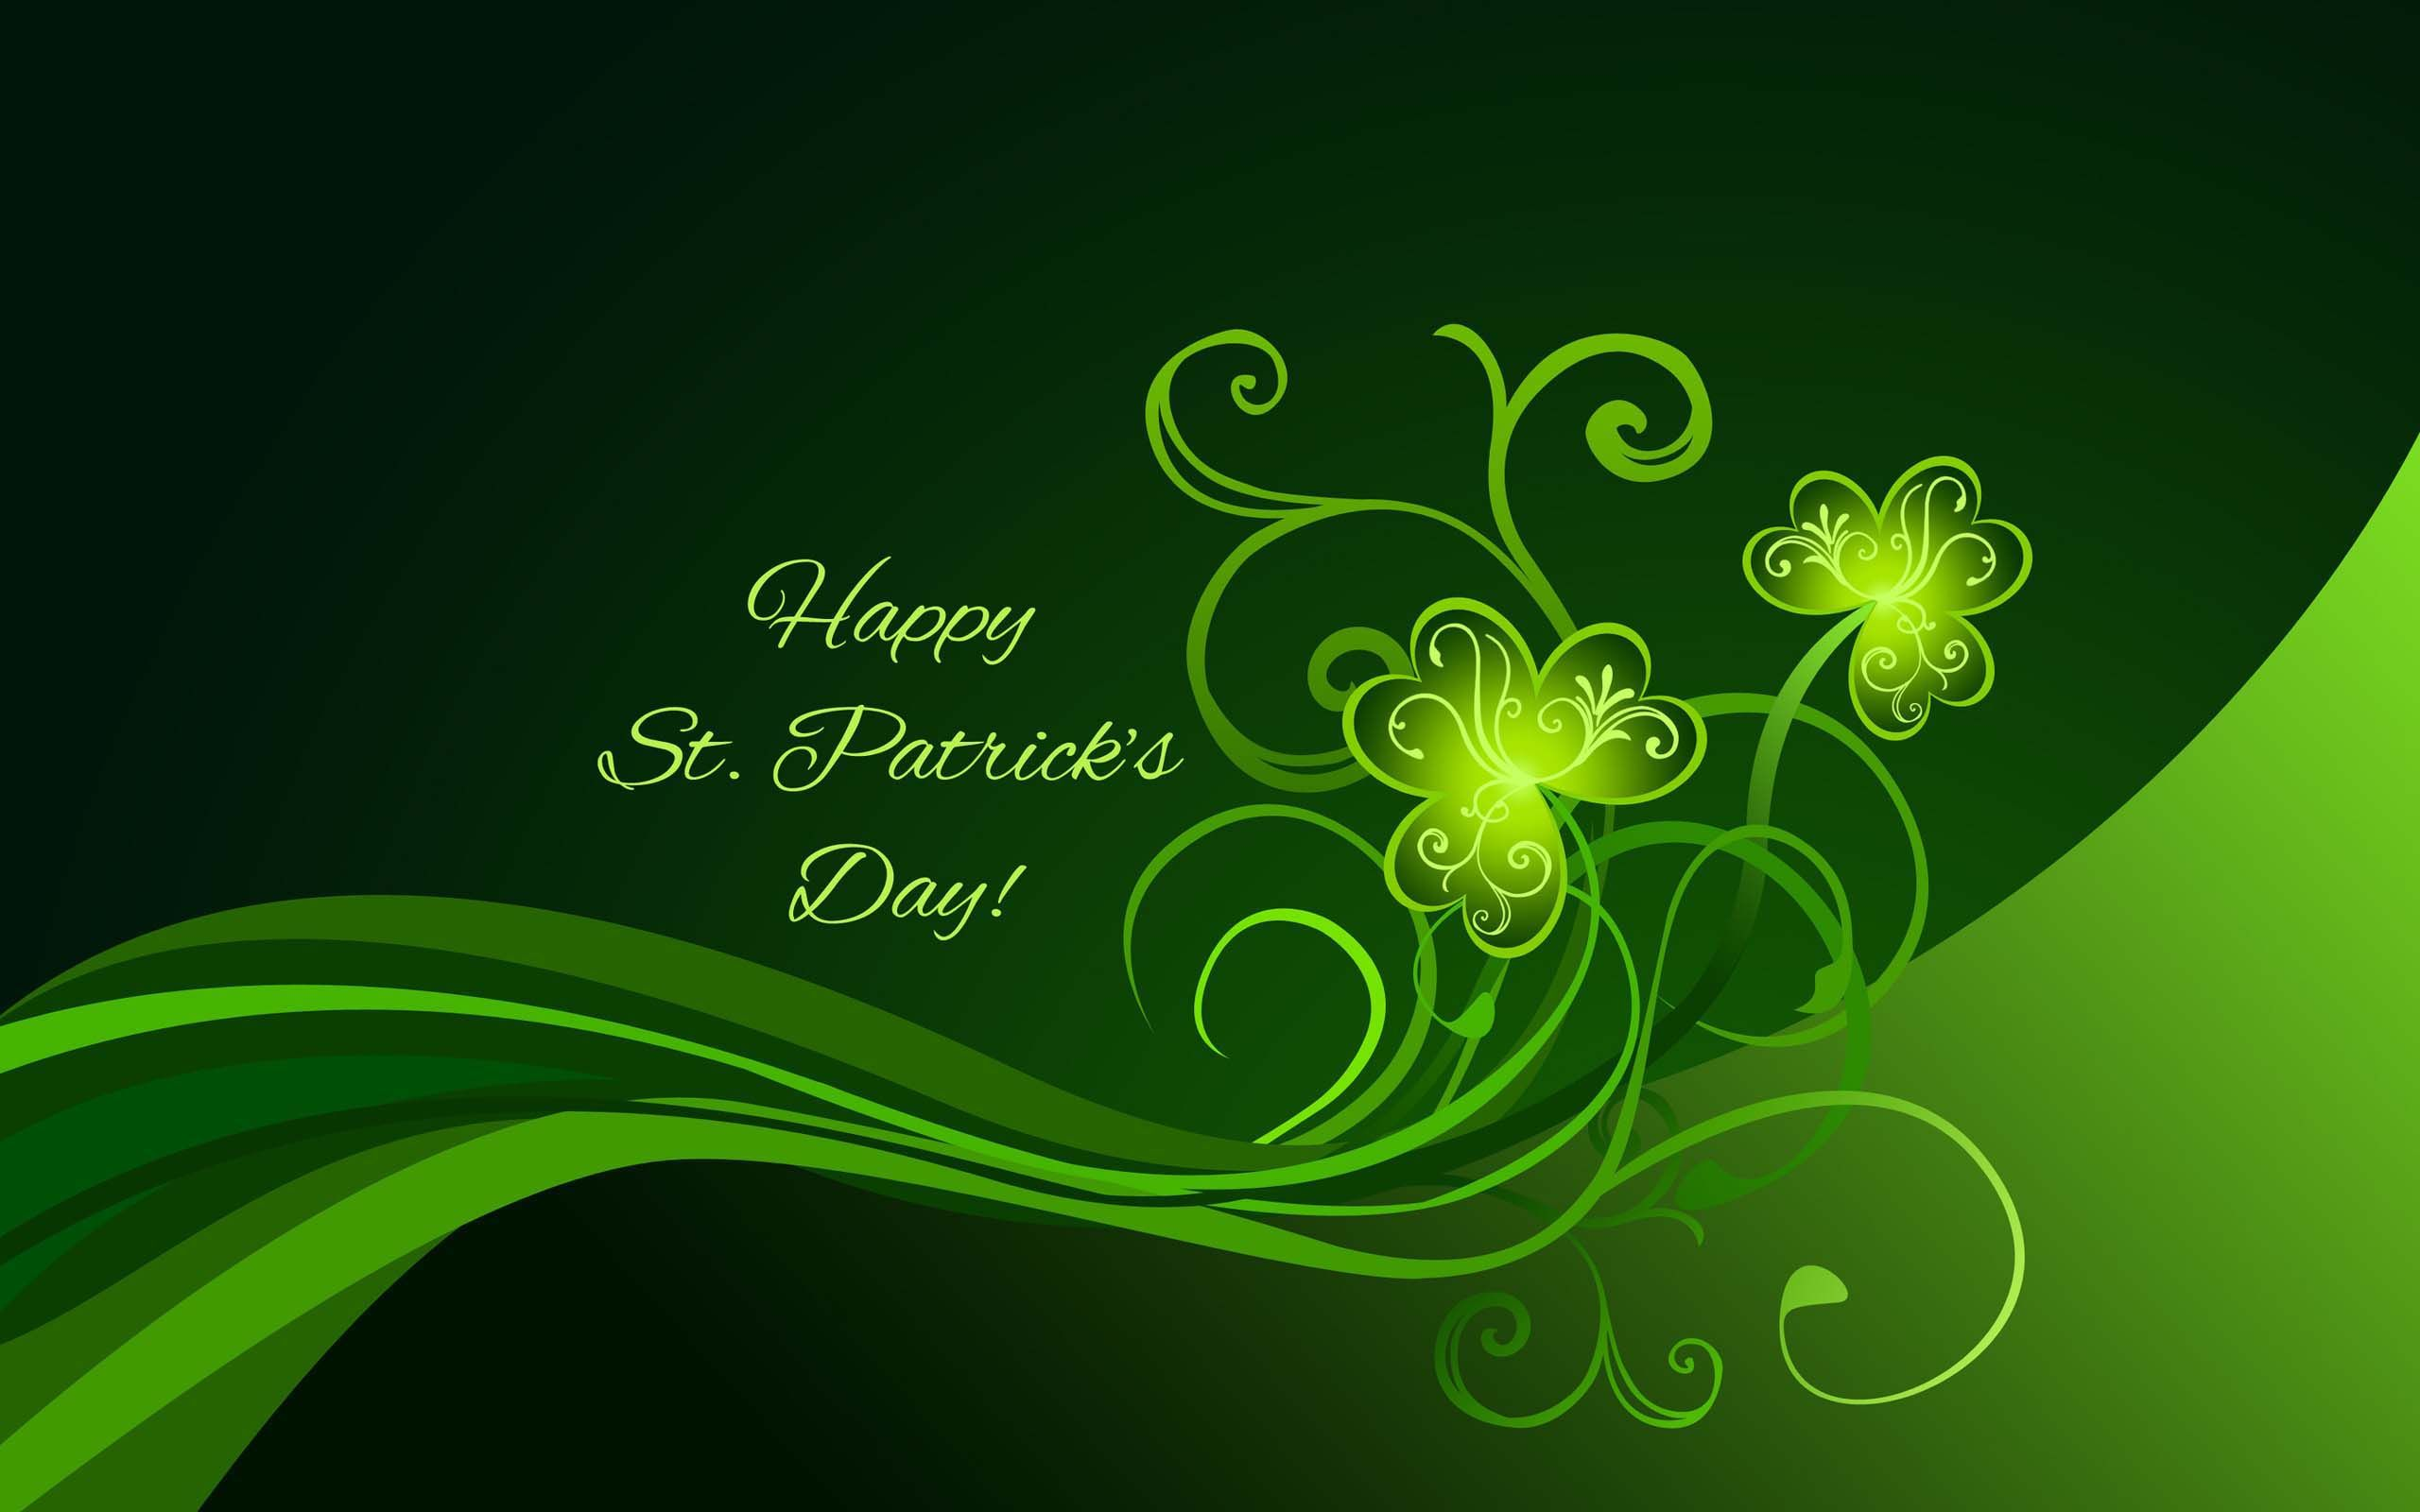 Pin By Janice Maxwell On Holiday Images St Patricks Day Pictures St Patricks Day Wallpaper St Patricks Day Quotes